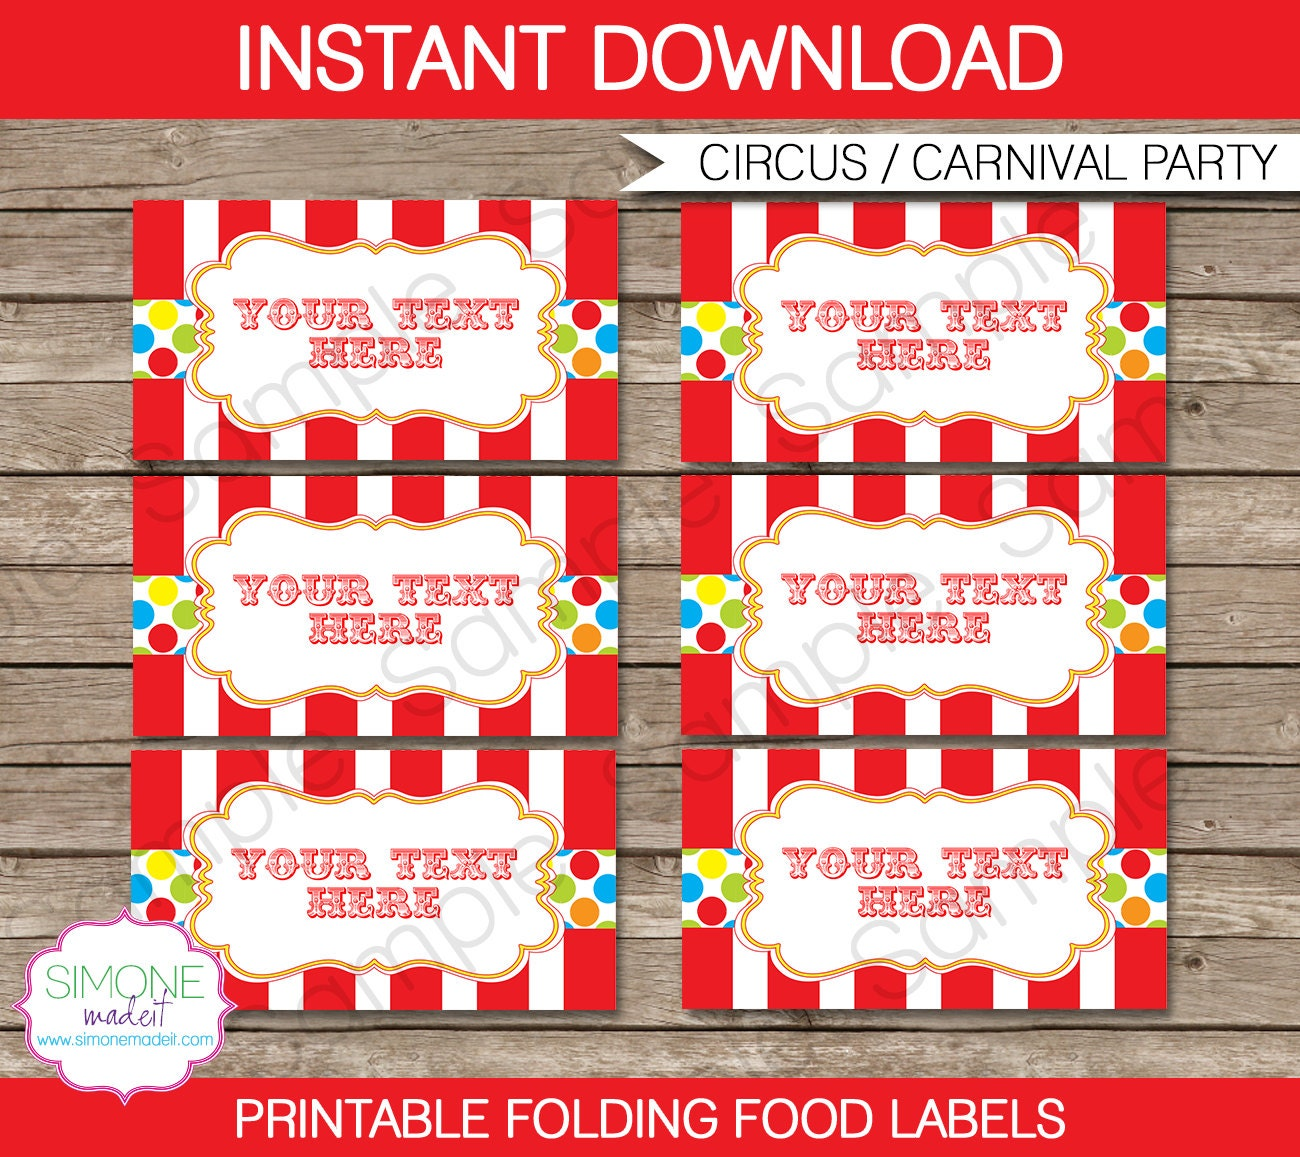 Carnival Food Labels Circus Food Labels Tent By Simonemadeit